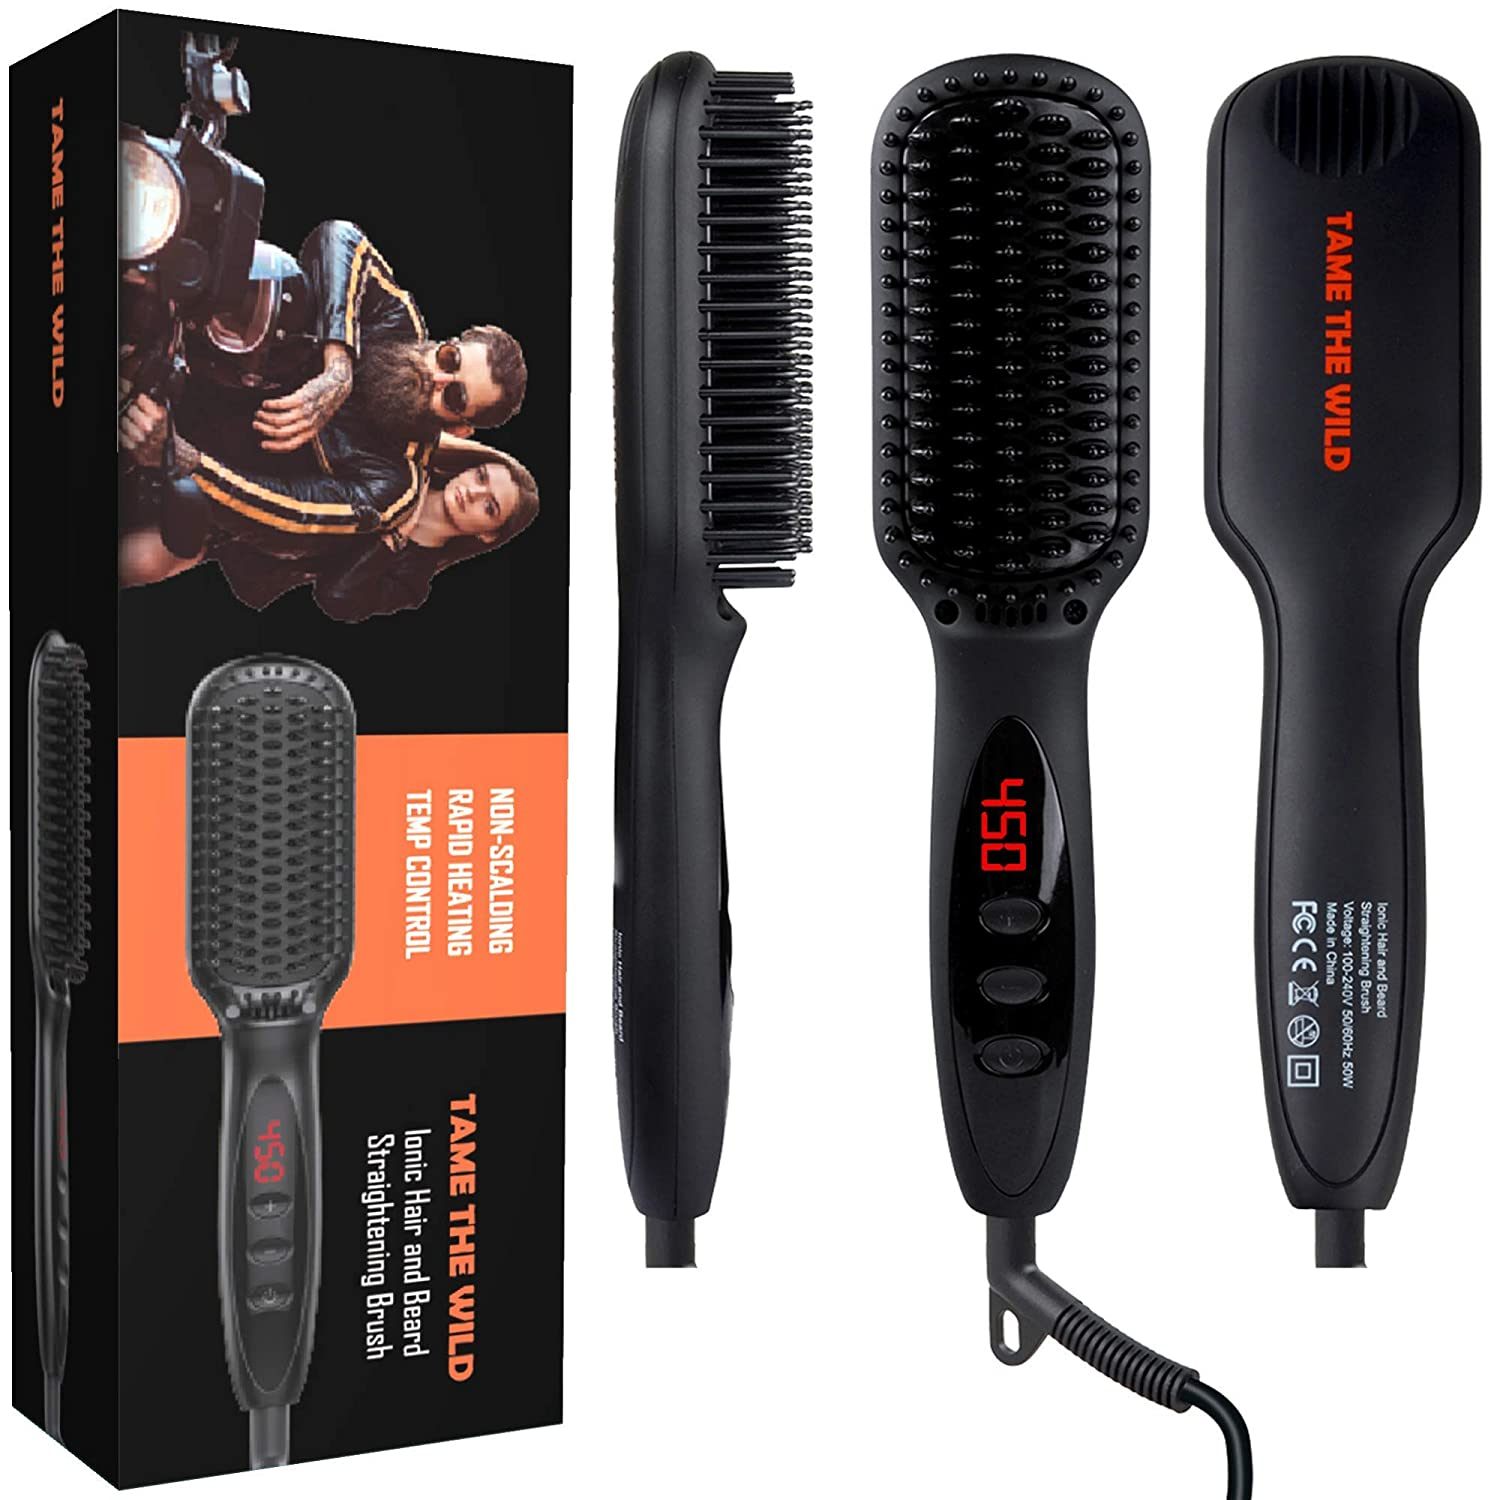 "Tame's Beard Straightener for Men - Anti-Scald Beard Straightening Comb - MCH Ceramic Heater Tech - 12 Temp Settings - Built In Ionic Generator - LED Display - Best for Beards Over 2"" Long"